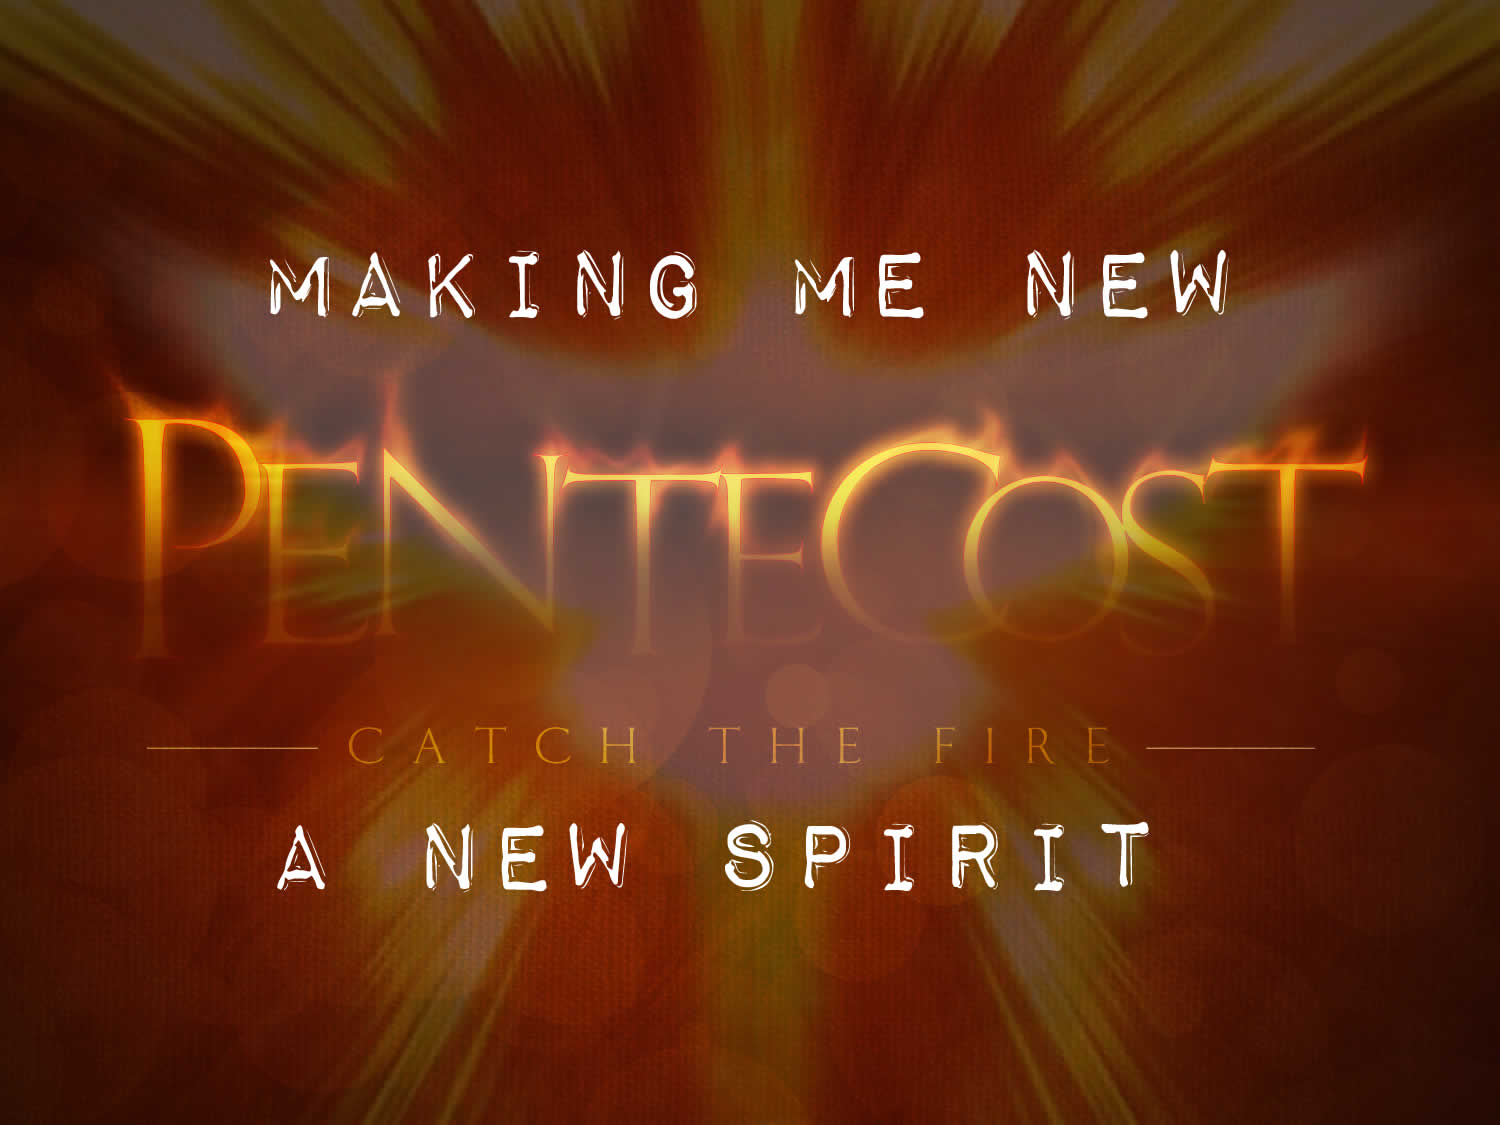 05/21/2017 – A New Spirit – Making Me New